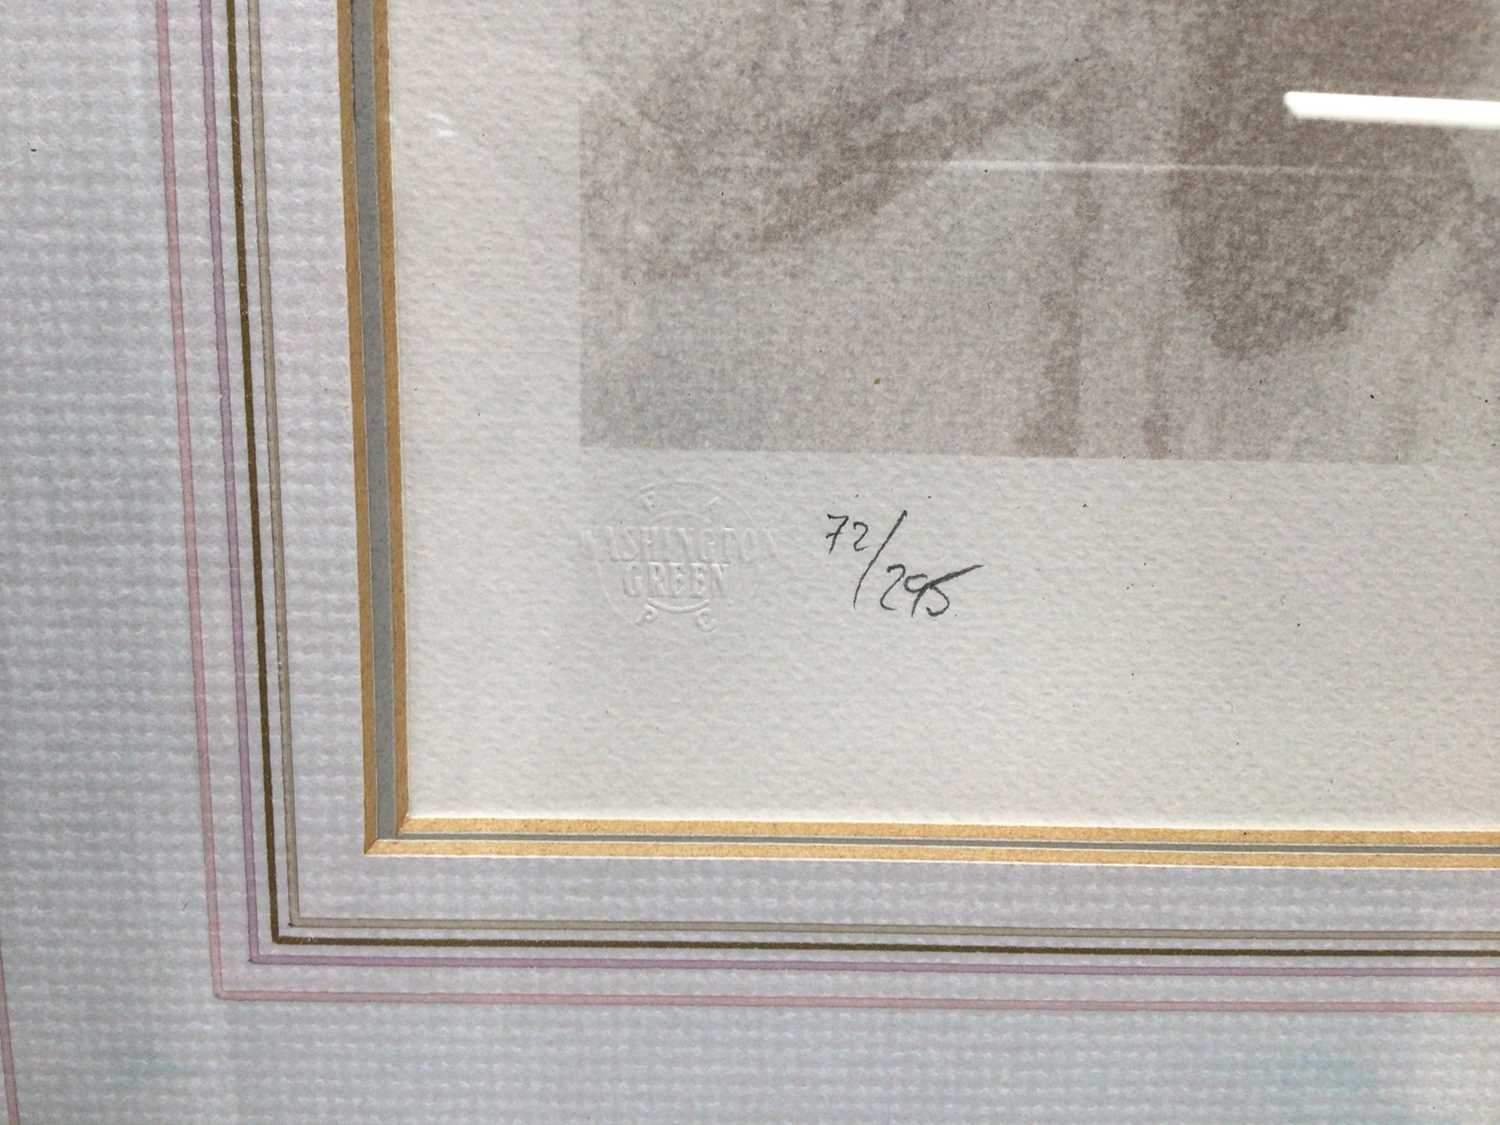 Gordon King (b.1939) signed limited edition lithograph - Studio Look, 72/295, 41cm x 54cm, in glazed - Image 4 of 10